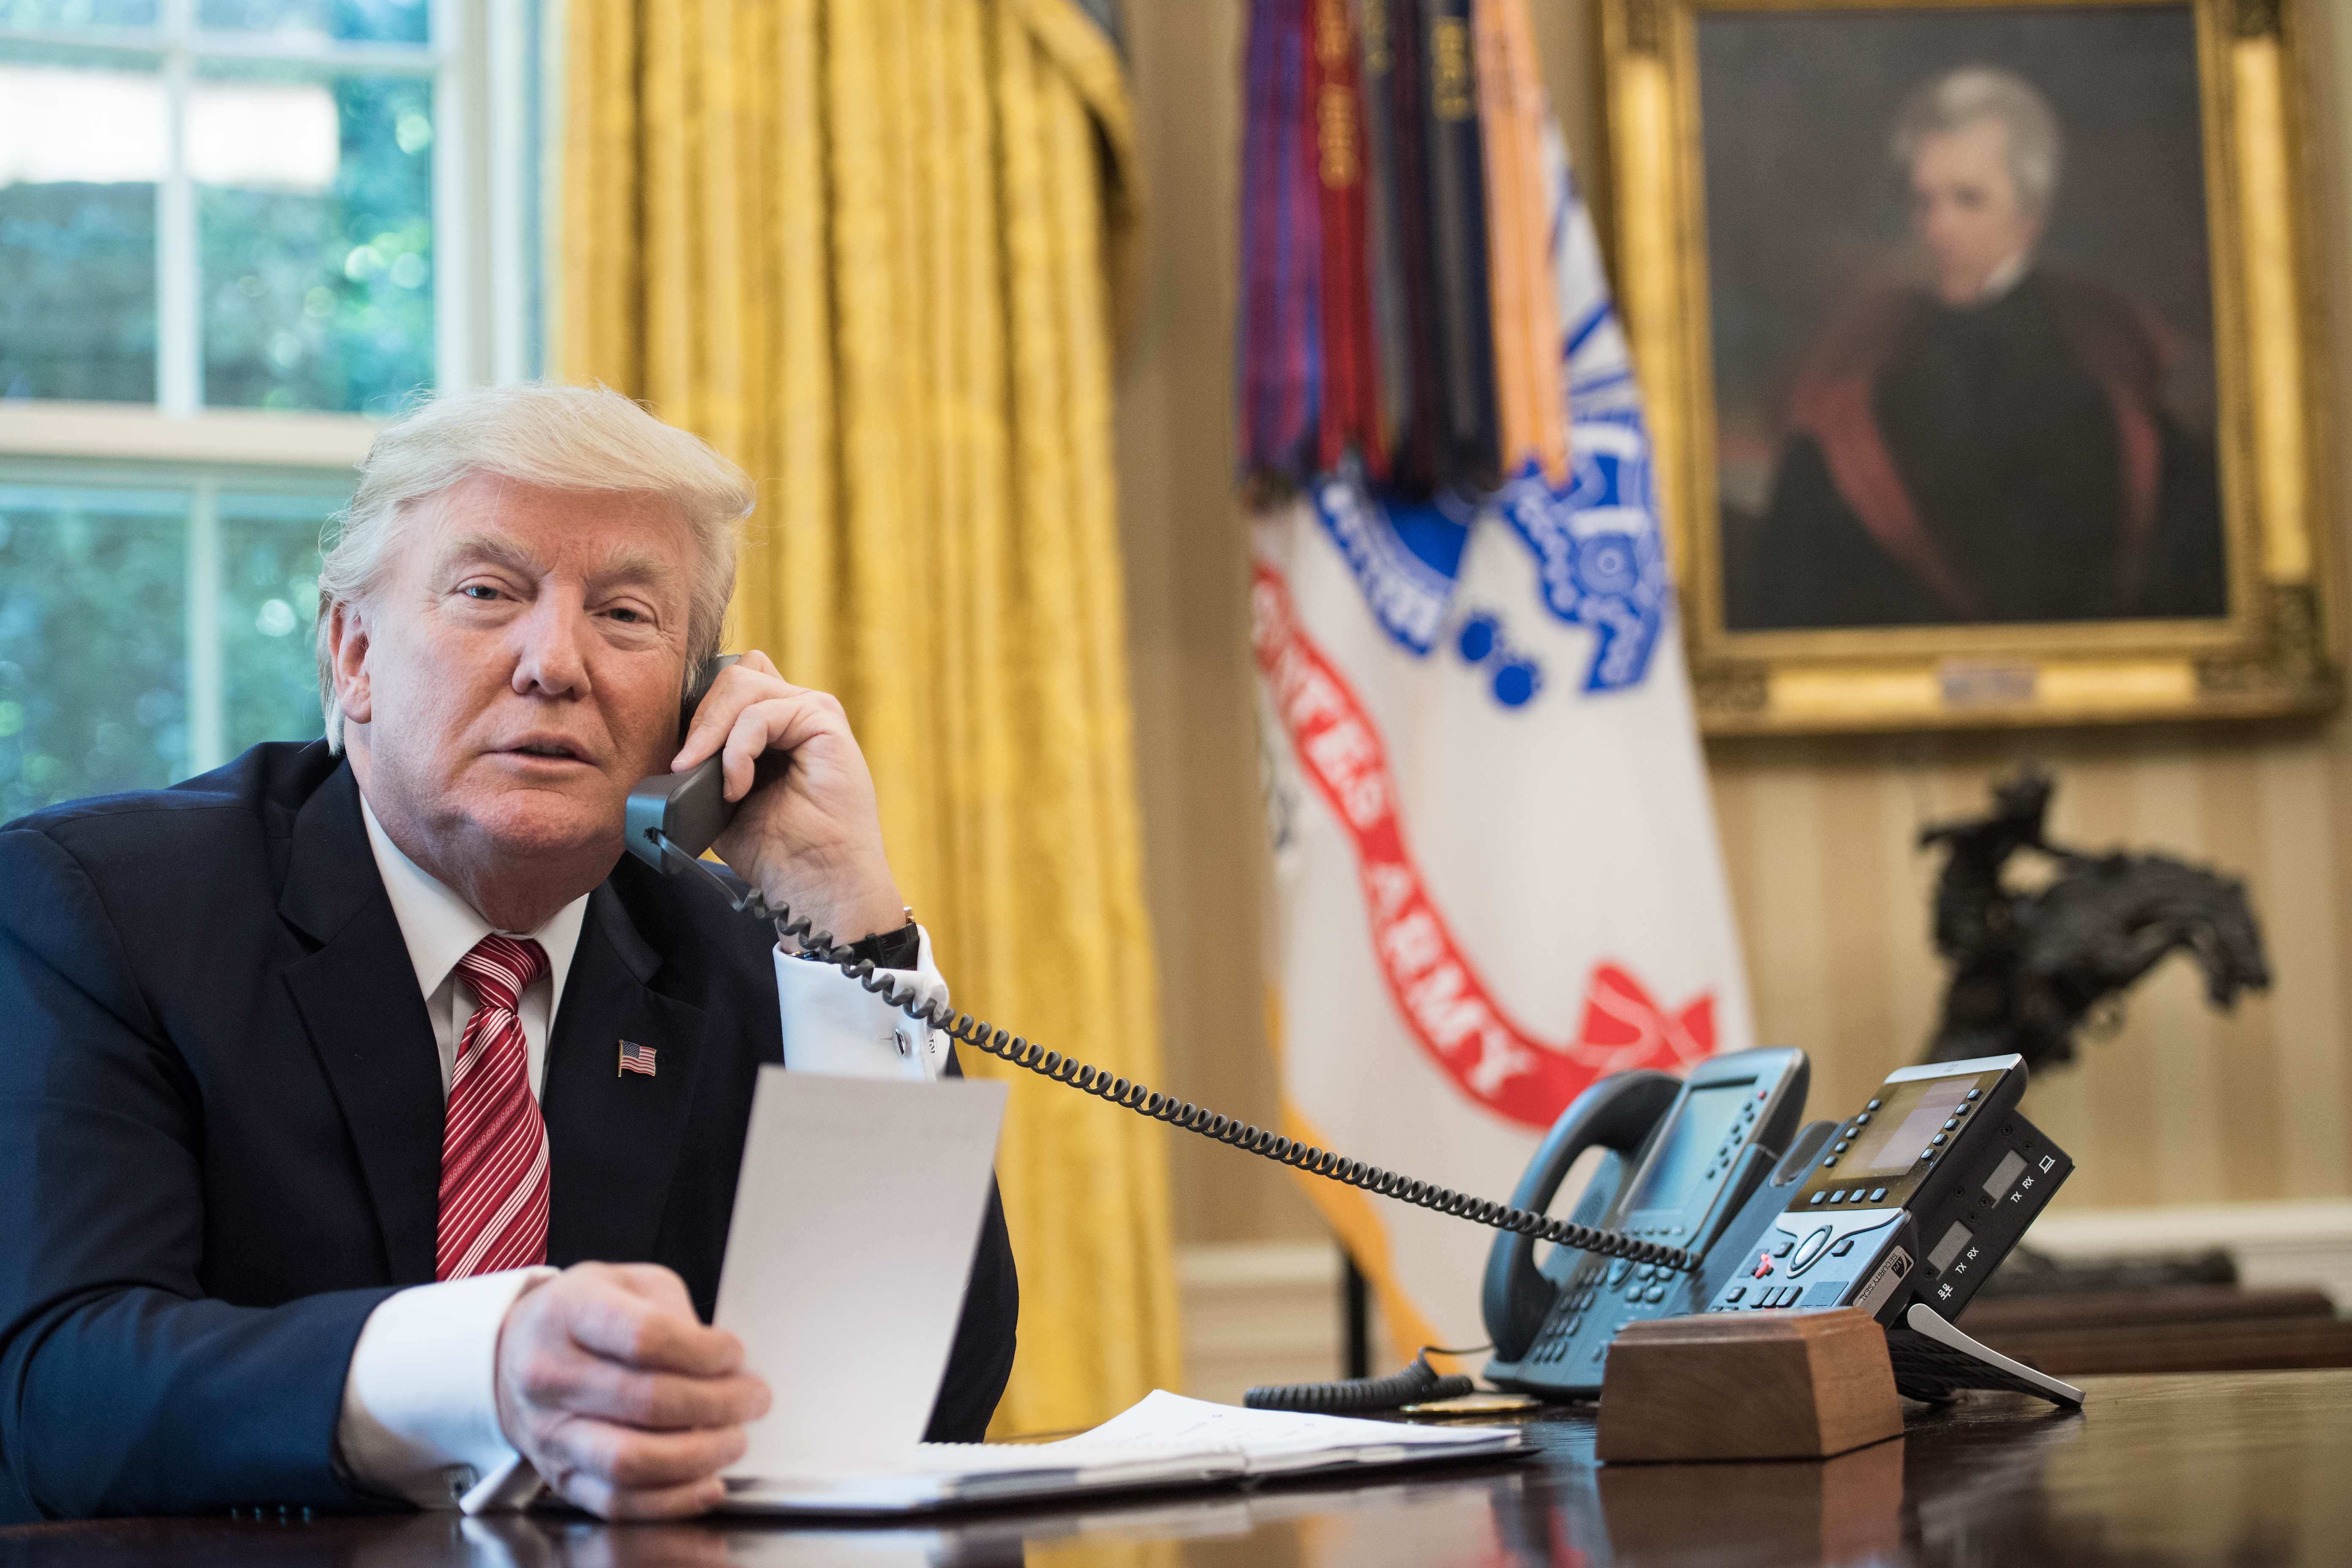 President Donald Trump speaks on the phone in the Oval Office.